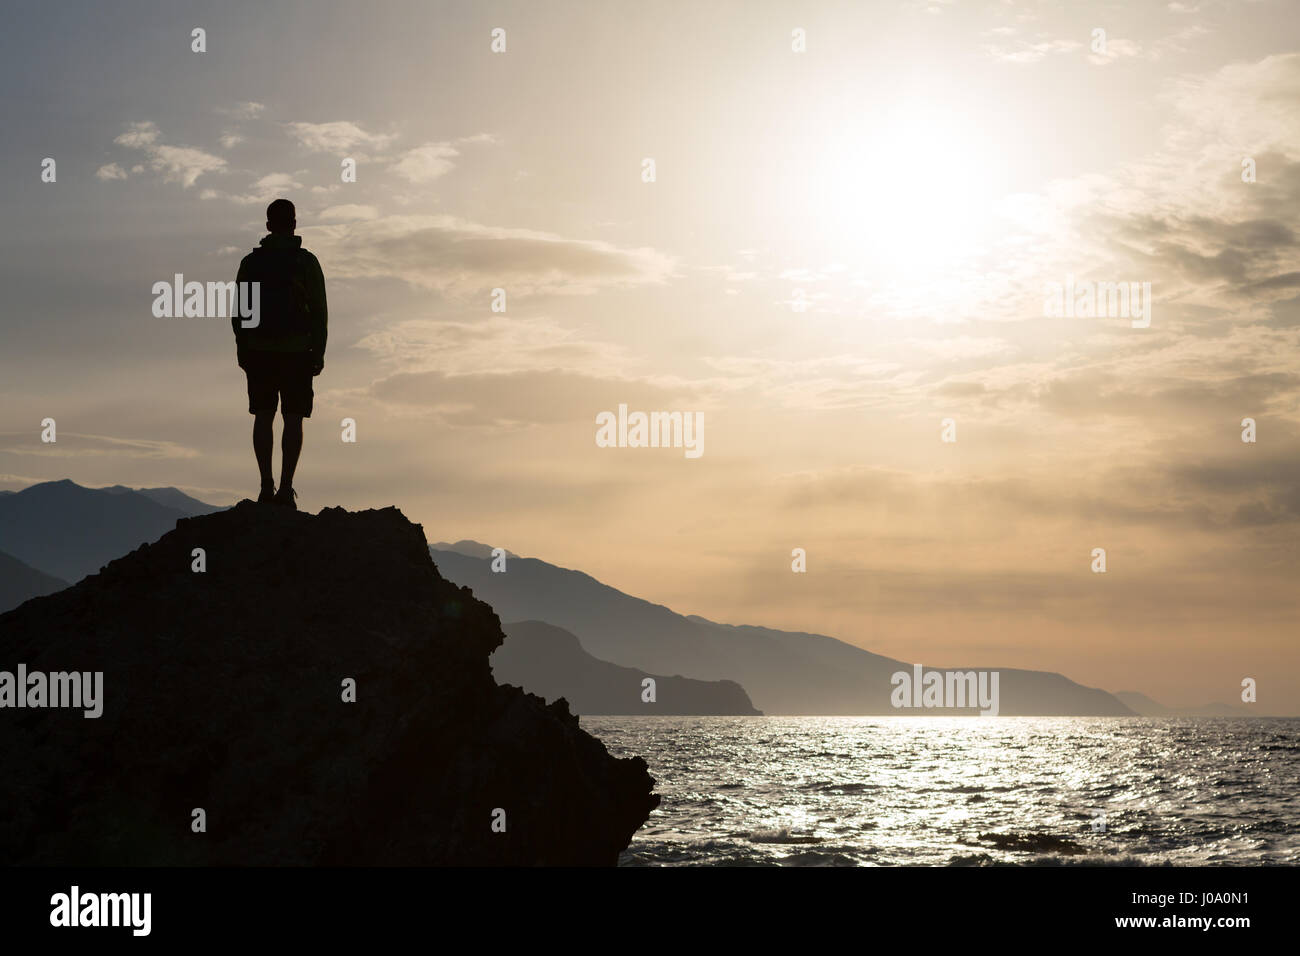 Hiker or runner silhouette backpacker, man looking at inspirational ocean landscape and islands on mountain peak. - Stock Image